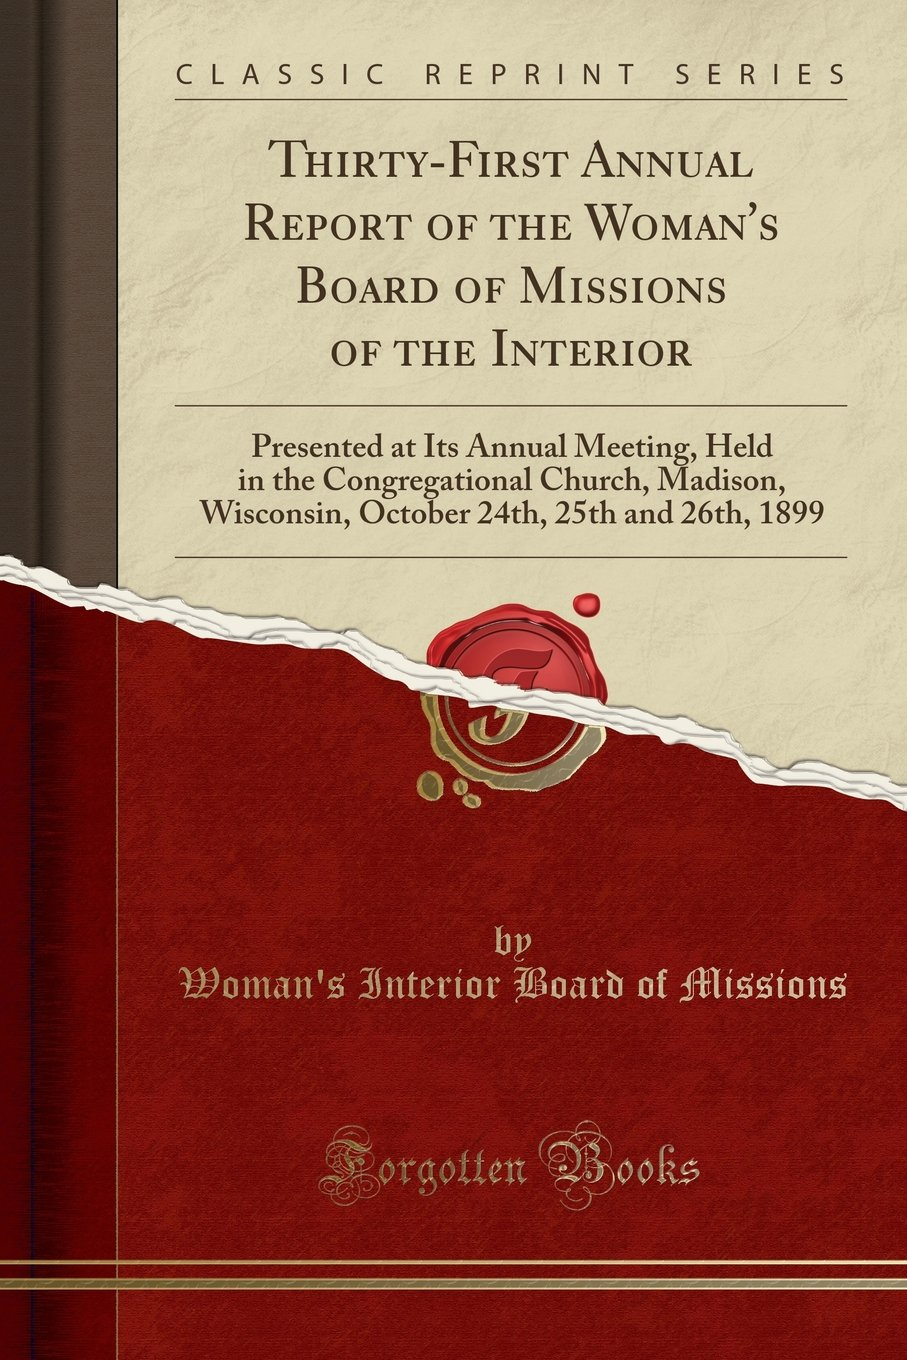 Download Thirty-First Annual Report of the Woman's Board of Missions of the Interior: Presented at Its Annual Meeting, Held in the Congregational Church, ... 24th, 25th and 26th, 1899 (Classic Reprint) PDF